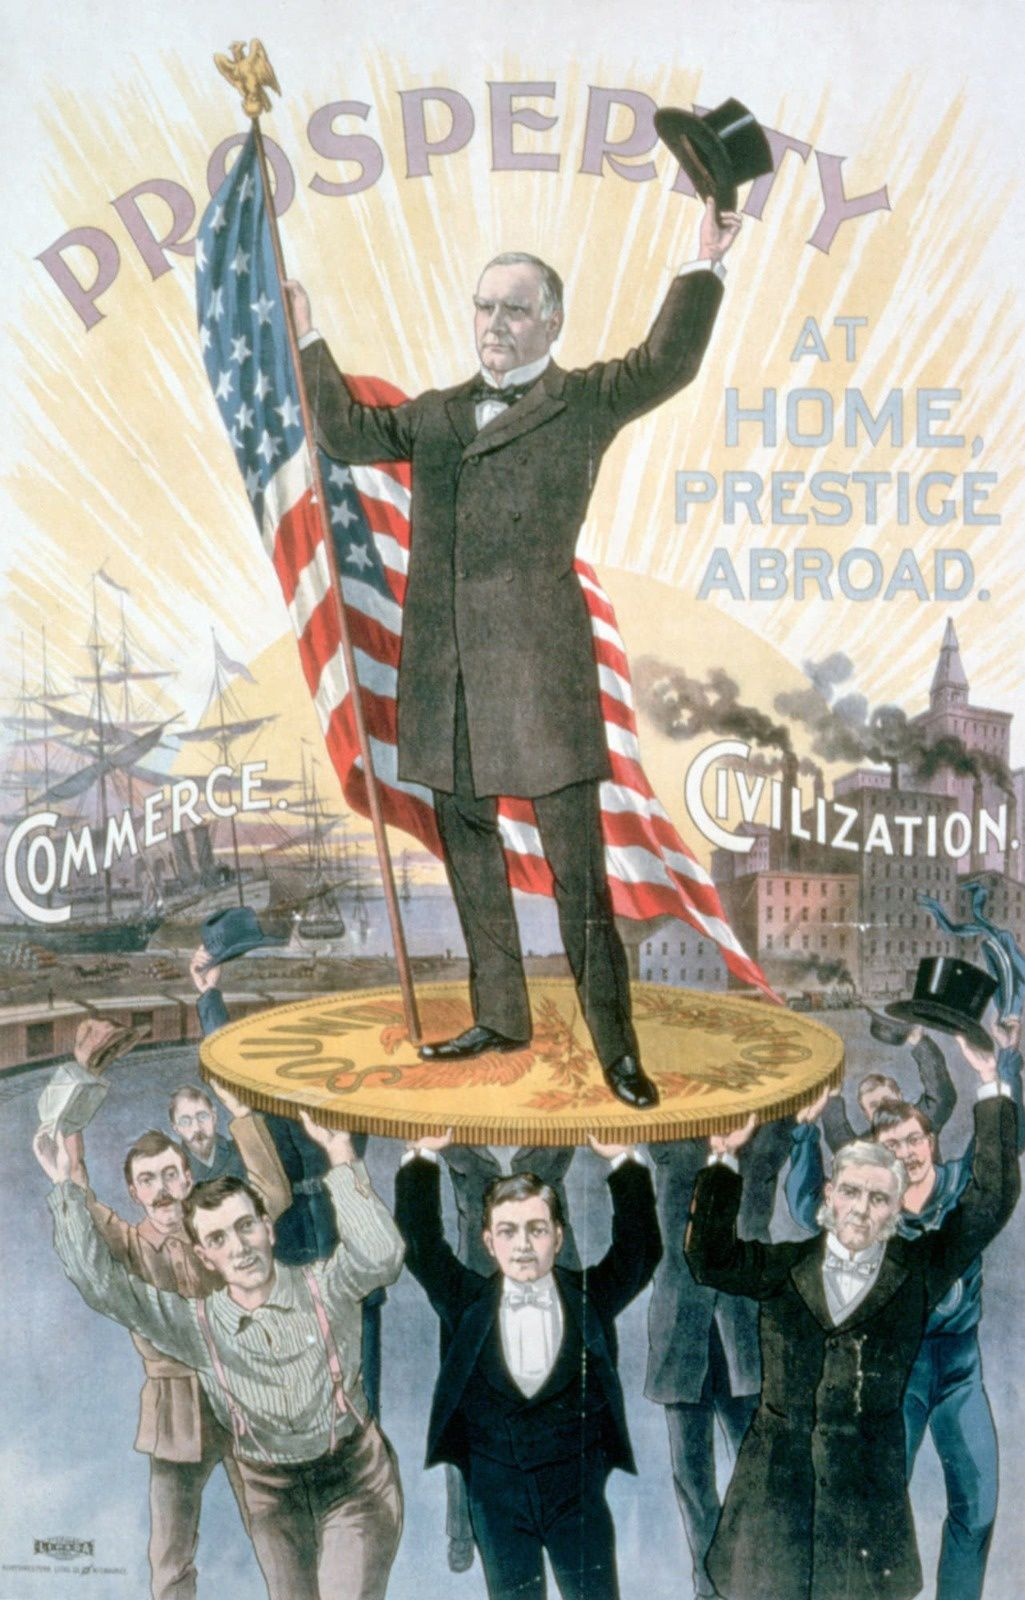 Assassinats politiques : Le meurtre du Président William McKinley, ou l'anarchie contre l'expansionnisme international des Etats-Unis